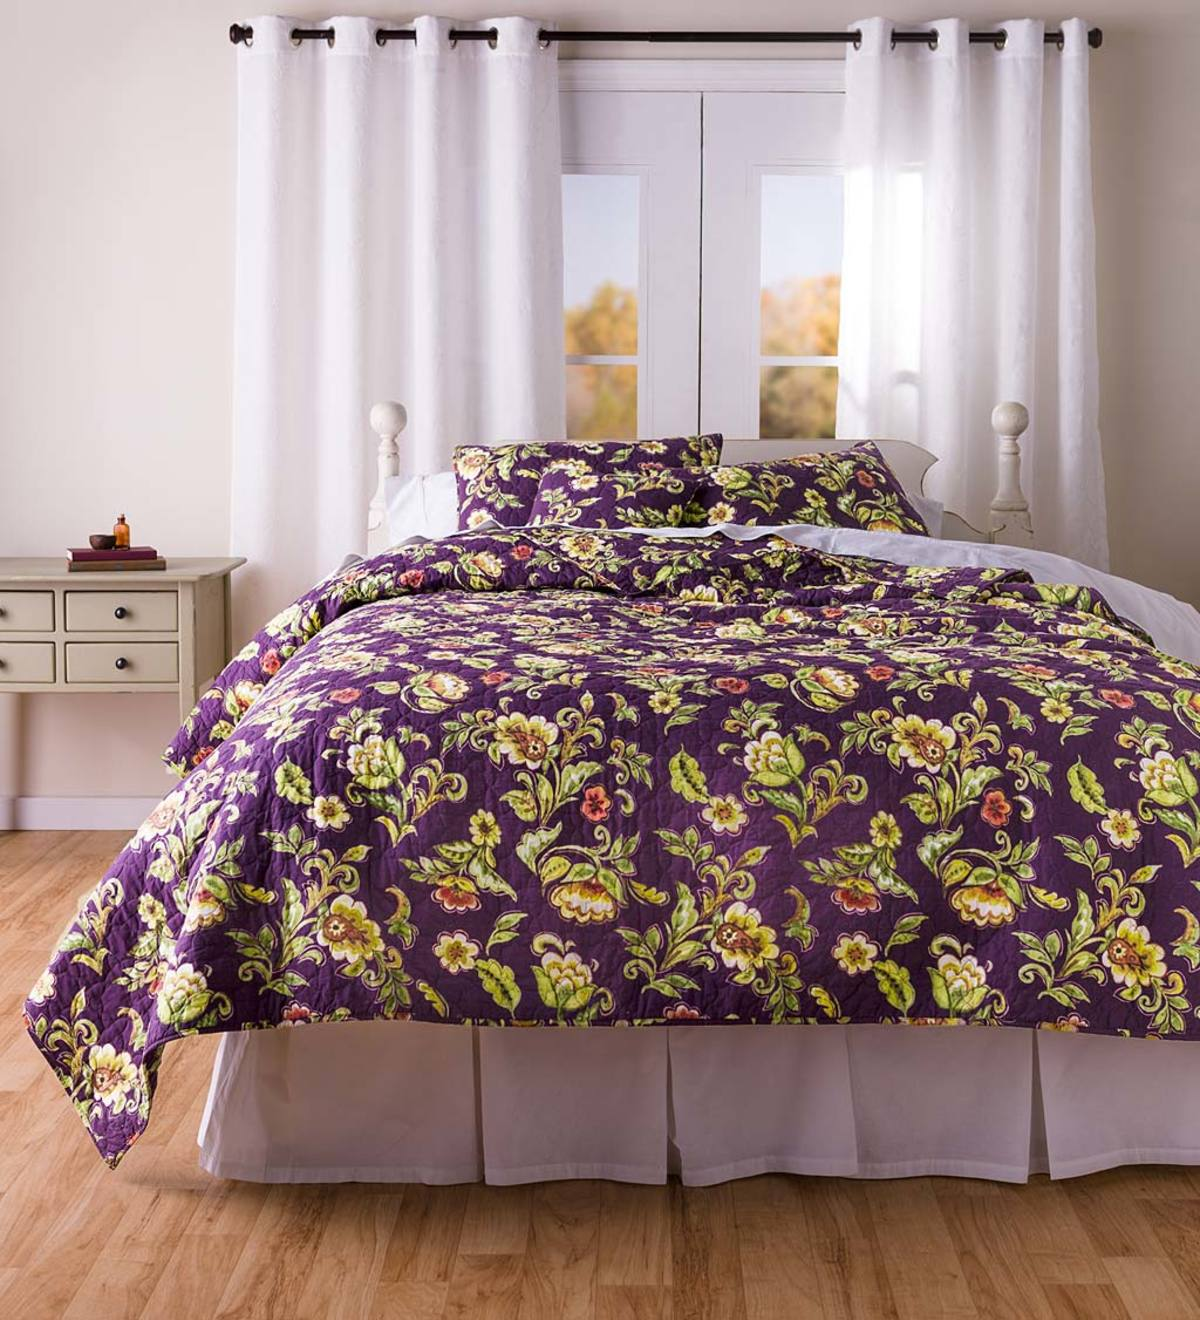 Delilah Floral Reversible Cotton Quilted Bedding